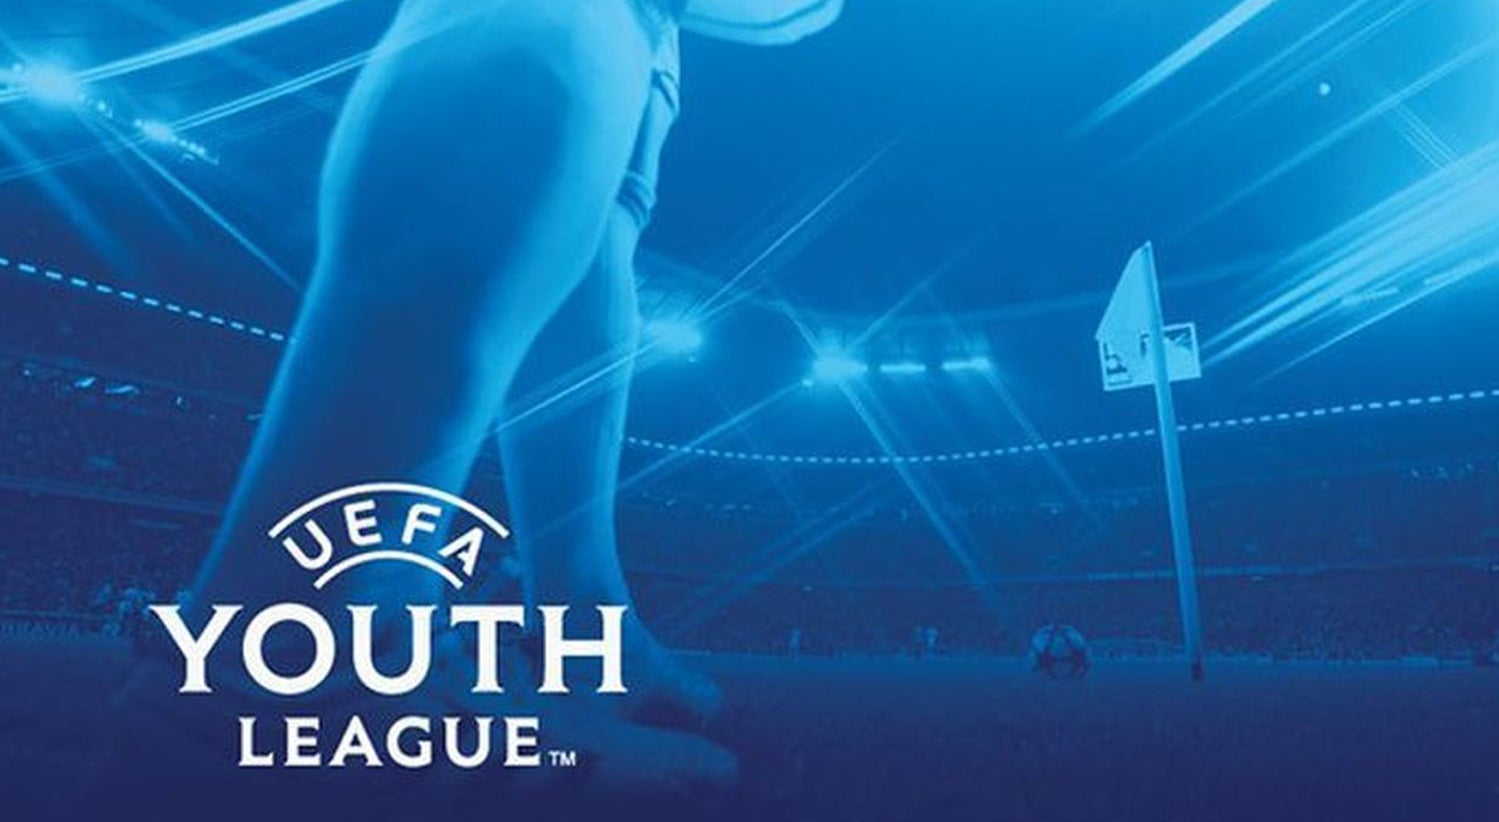 Benfica estreia-se na UEFA Youth League com triunfo sobre Bayern Munique